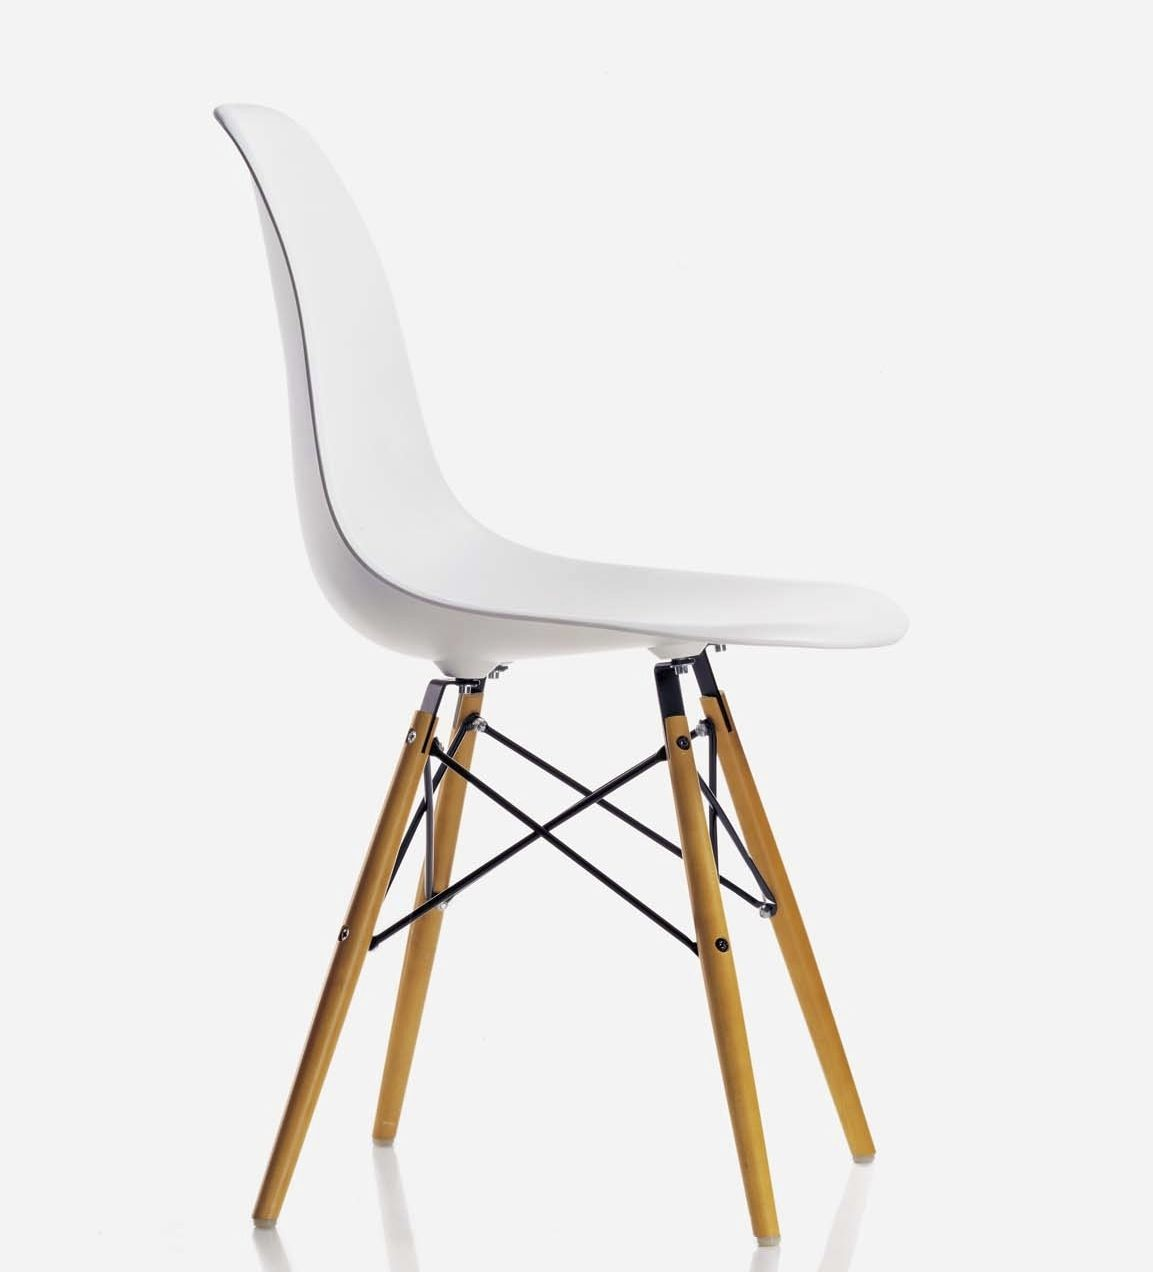 Fixation / Vitra Charles Rey Eames Eames dsw chair